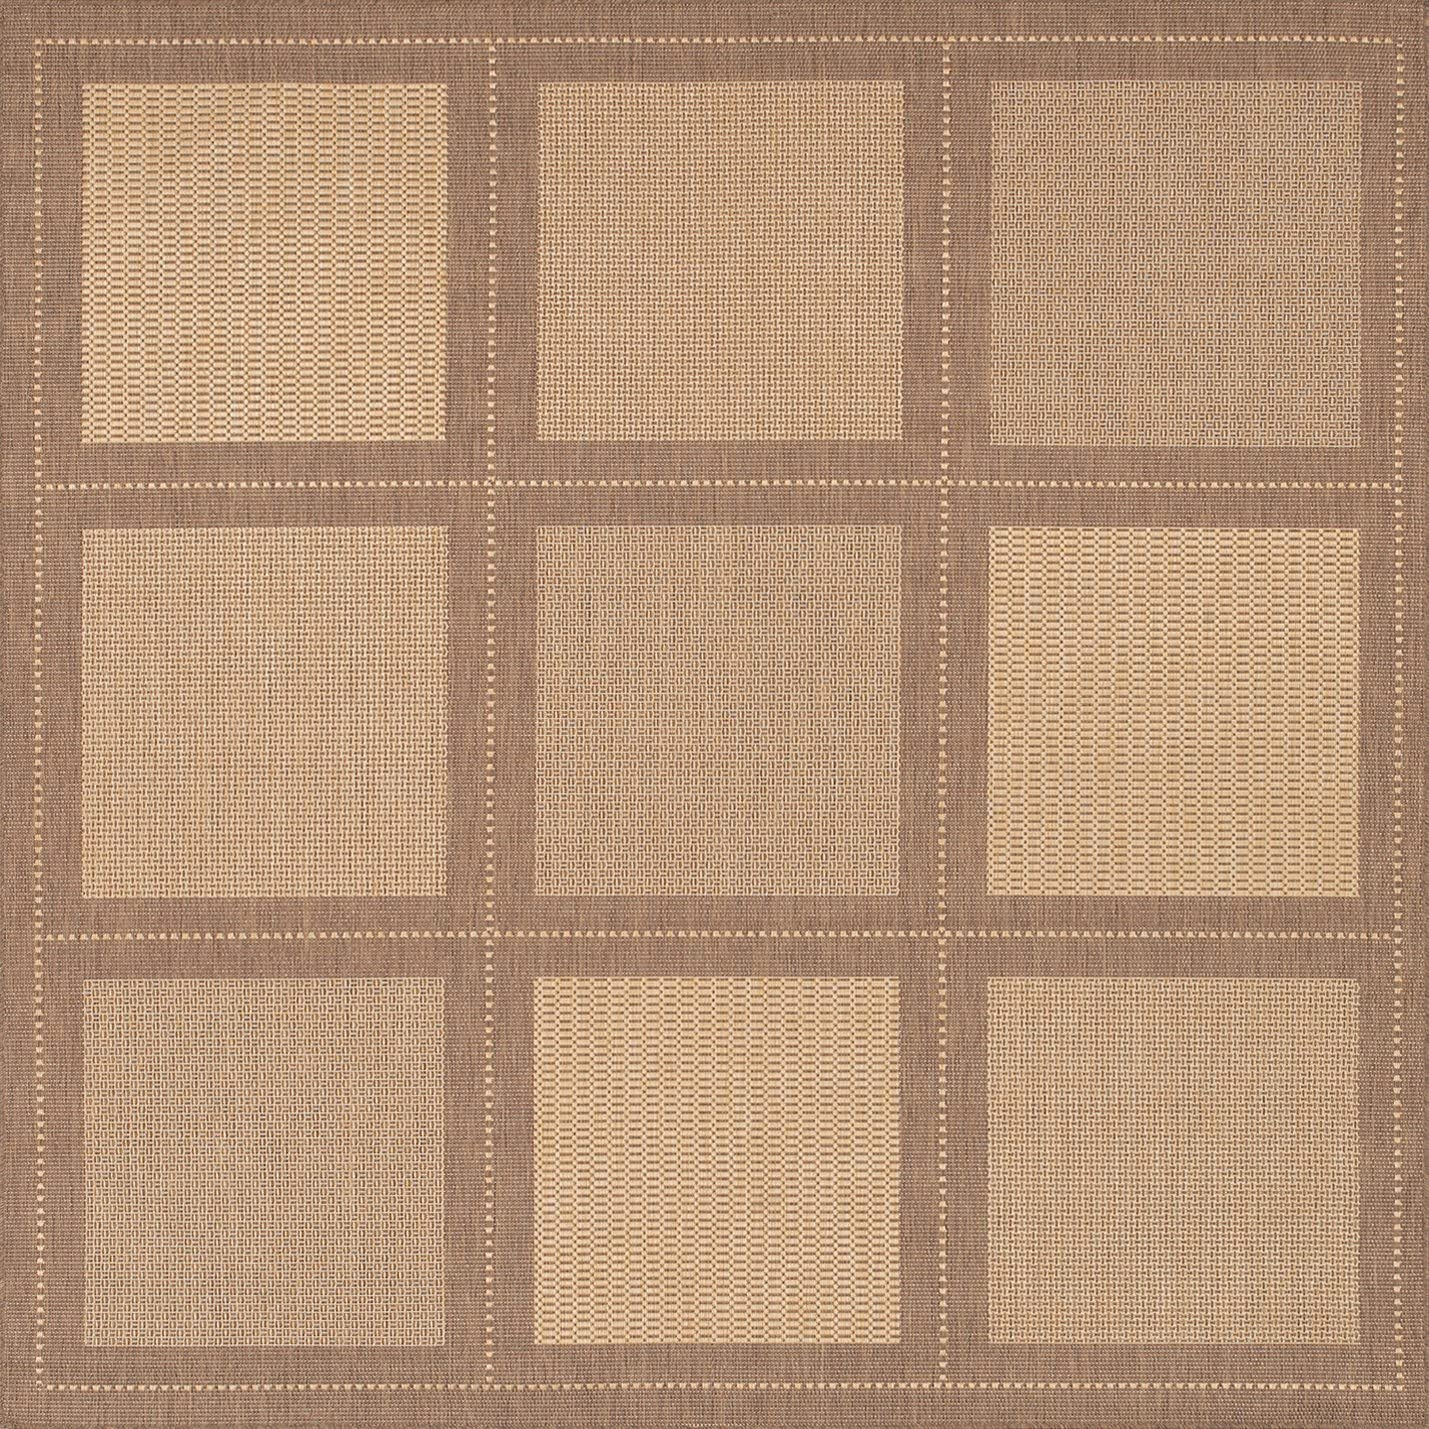 Couristan Recife Rug Summit Natural-Cocoa Rug 90in Sq